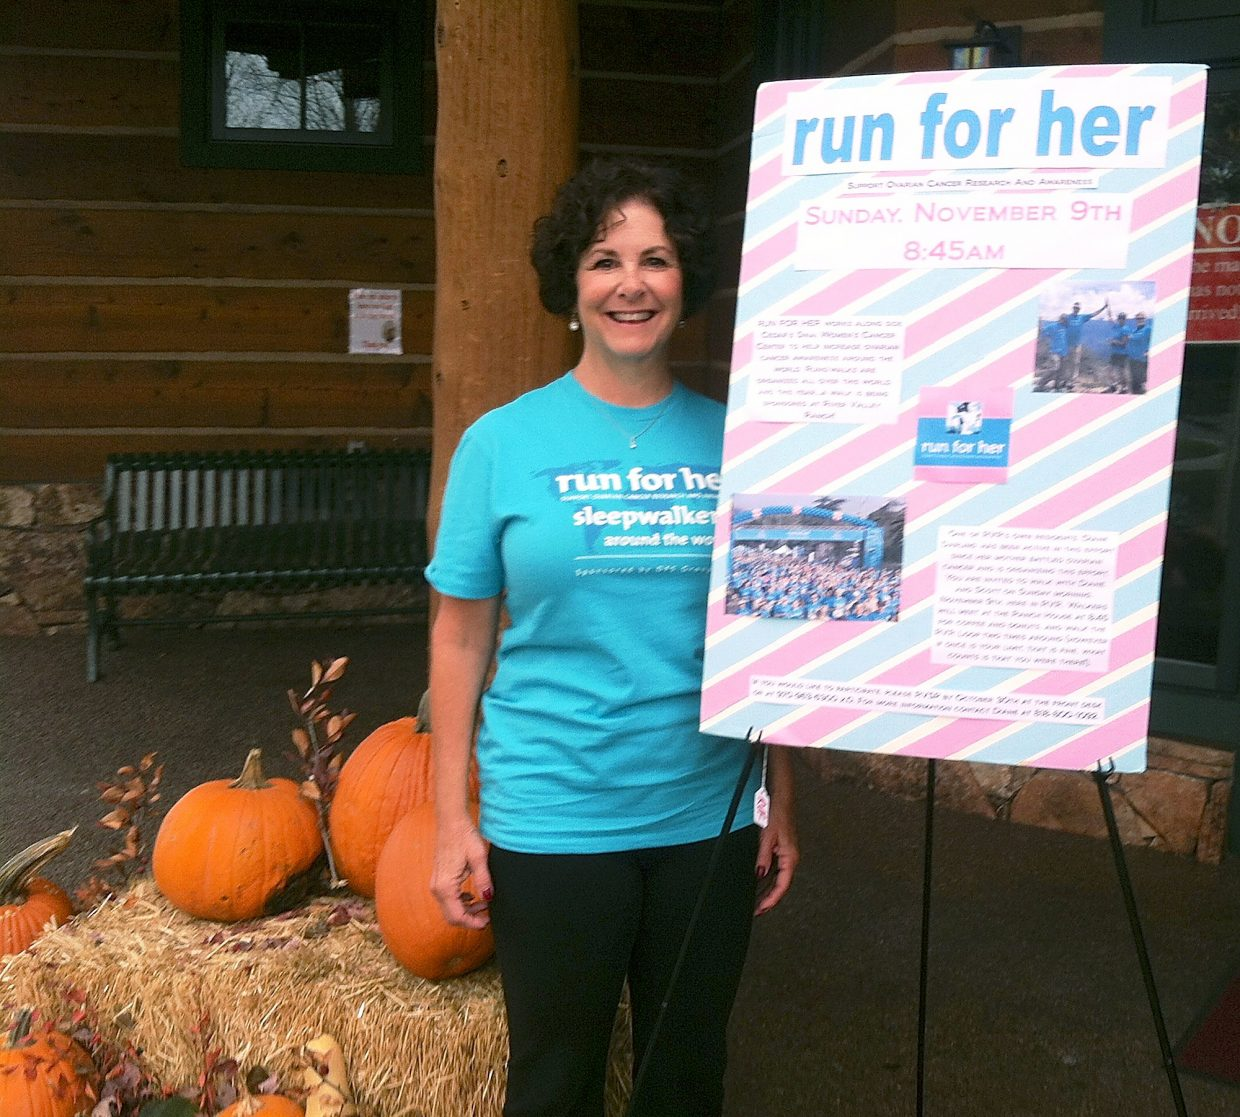 Carbondale woman starts 5K to raise ovarian cancer awareness